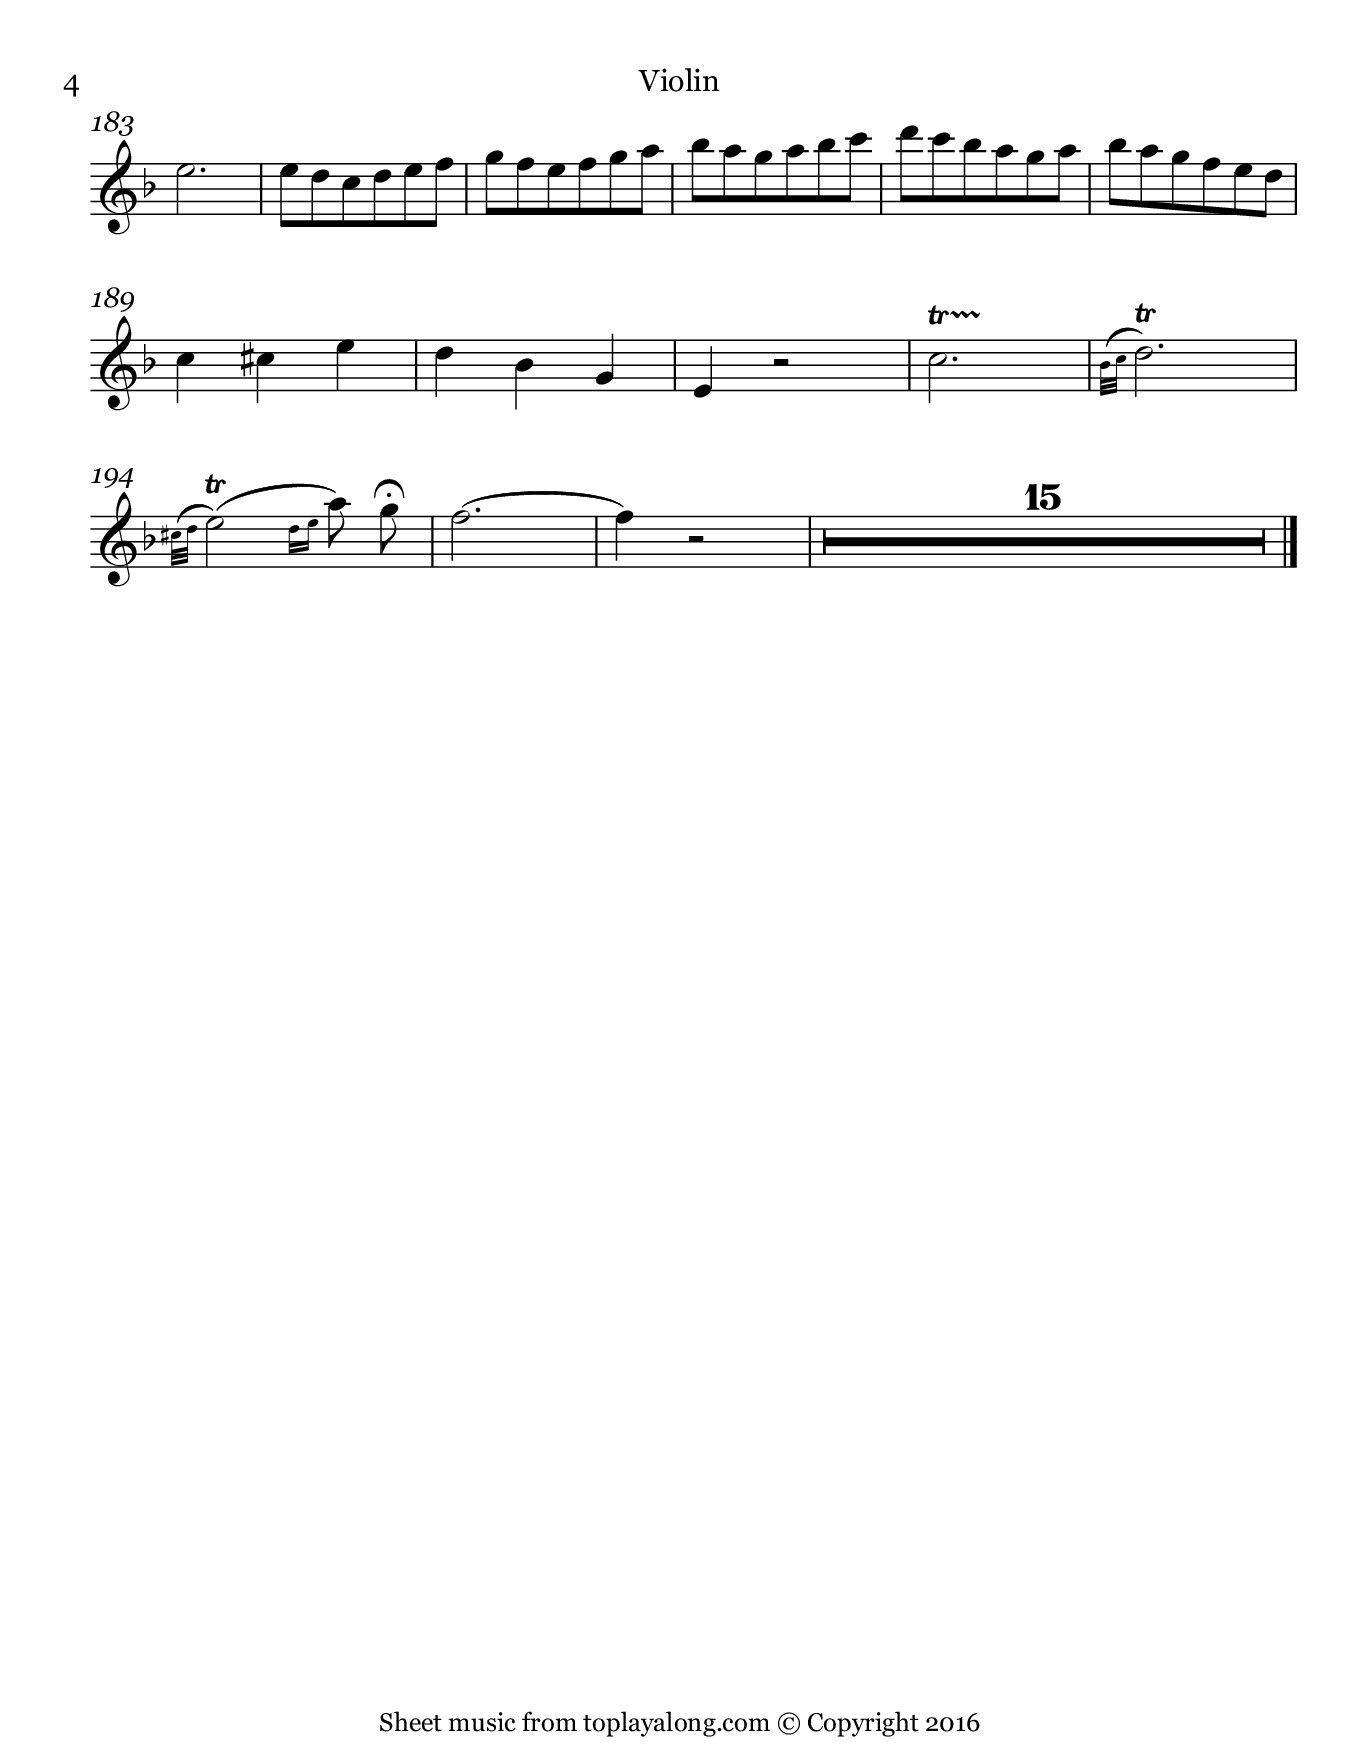 Je veux vivre from Romeo and Juliet by Gounod. Sheet music for Violin, page 4.